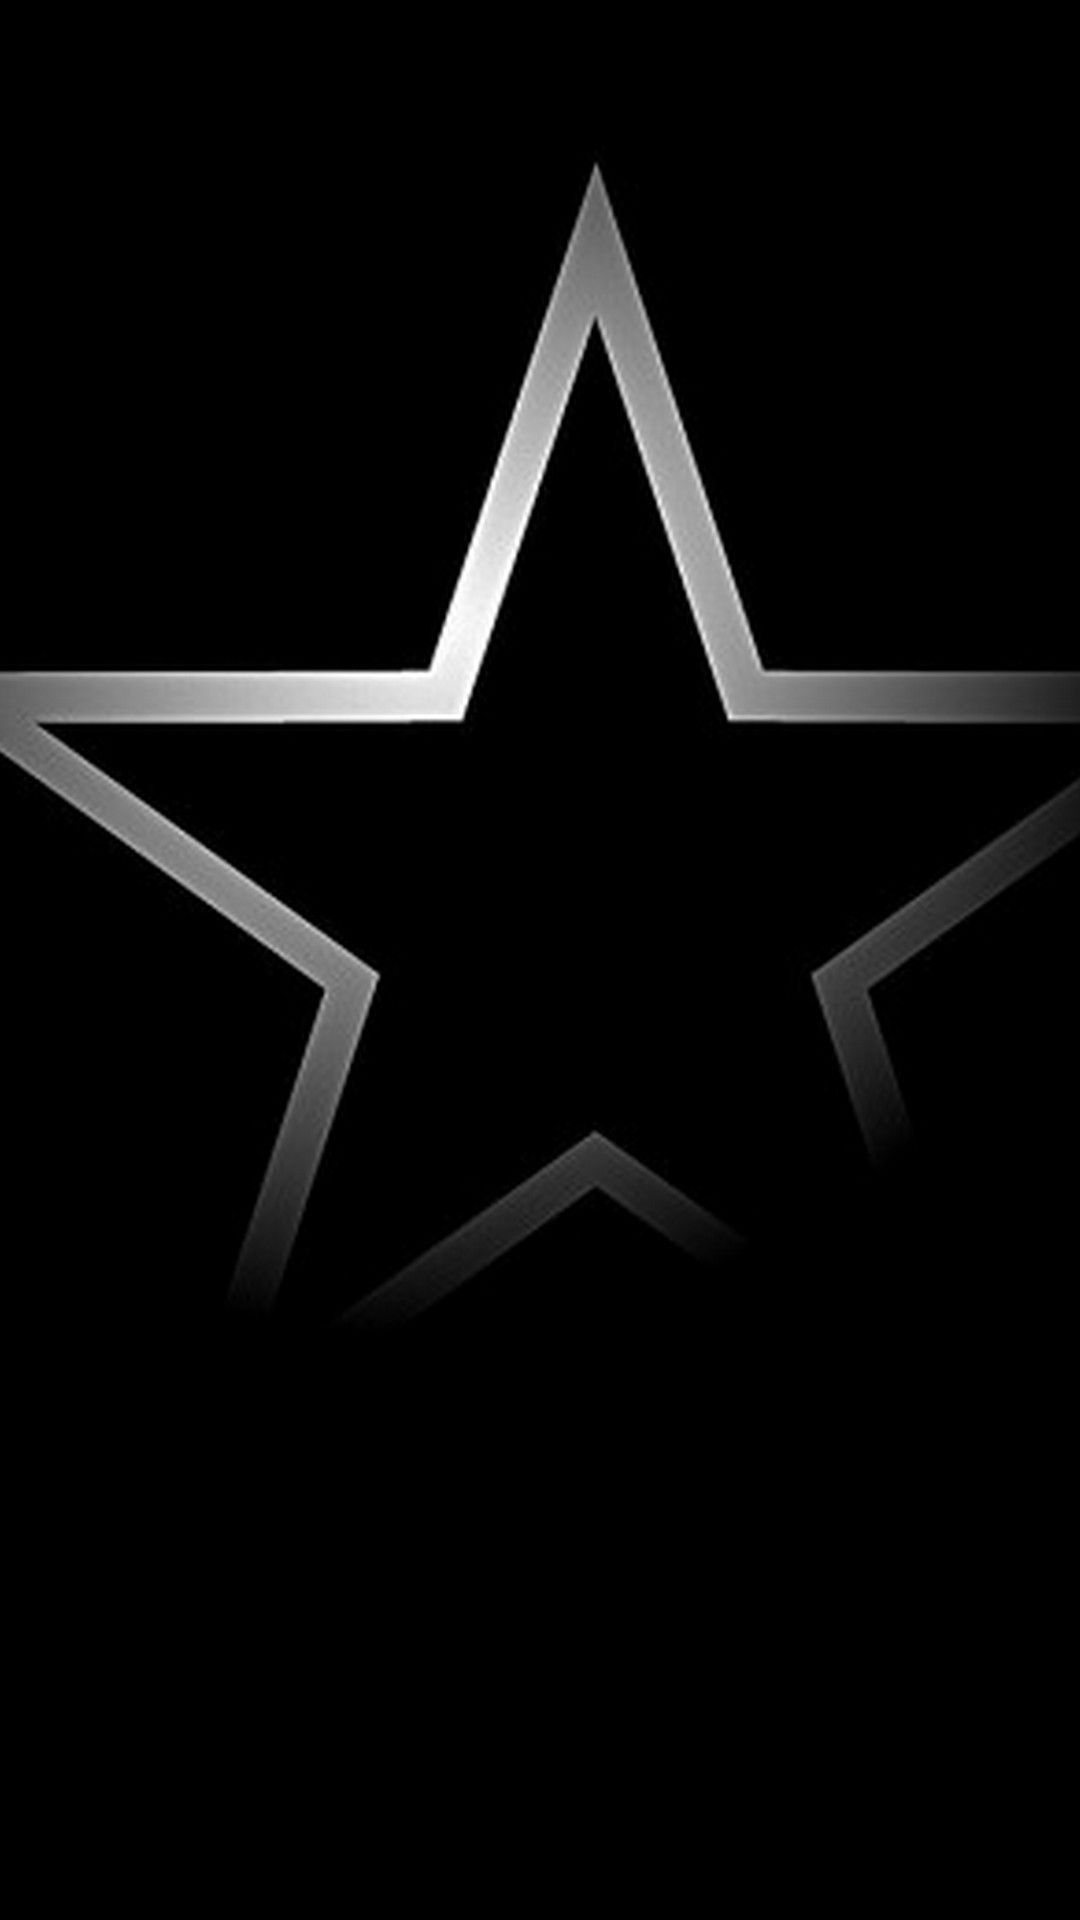 Star iPhone Wallpaper Black Background (avec images